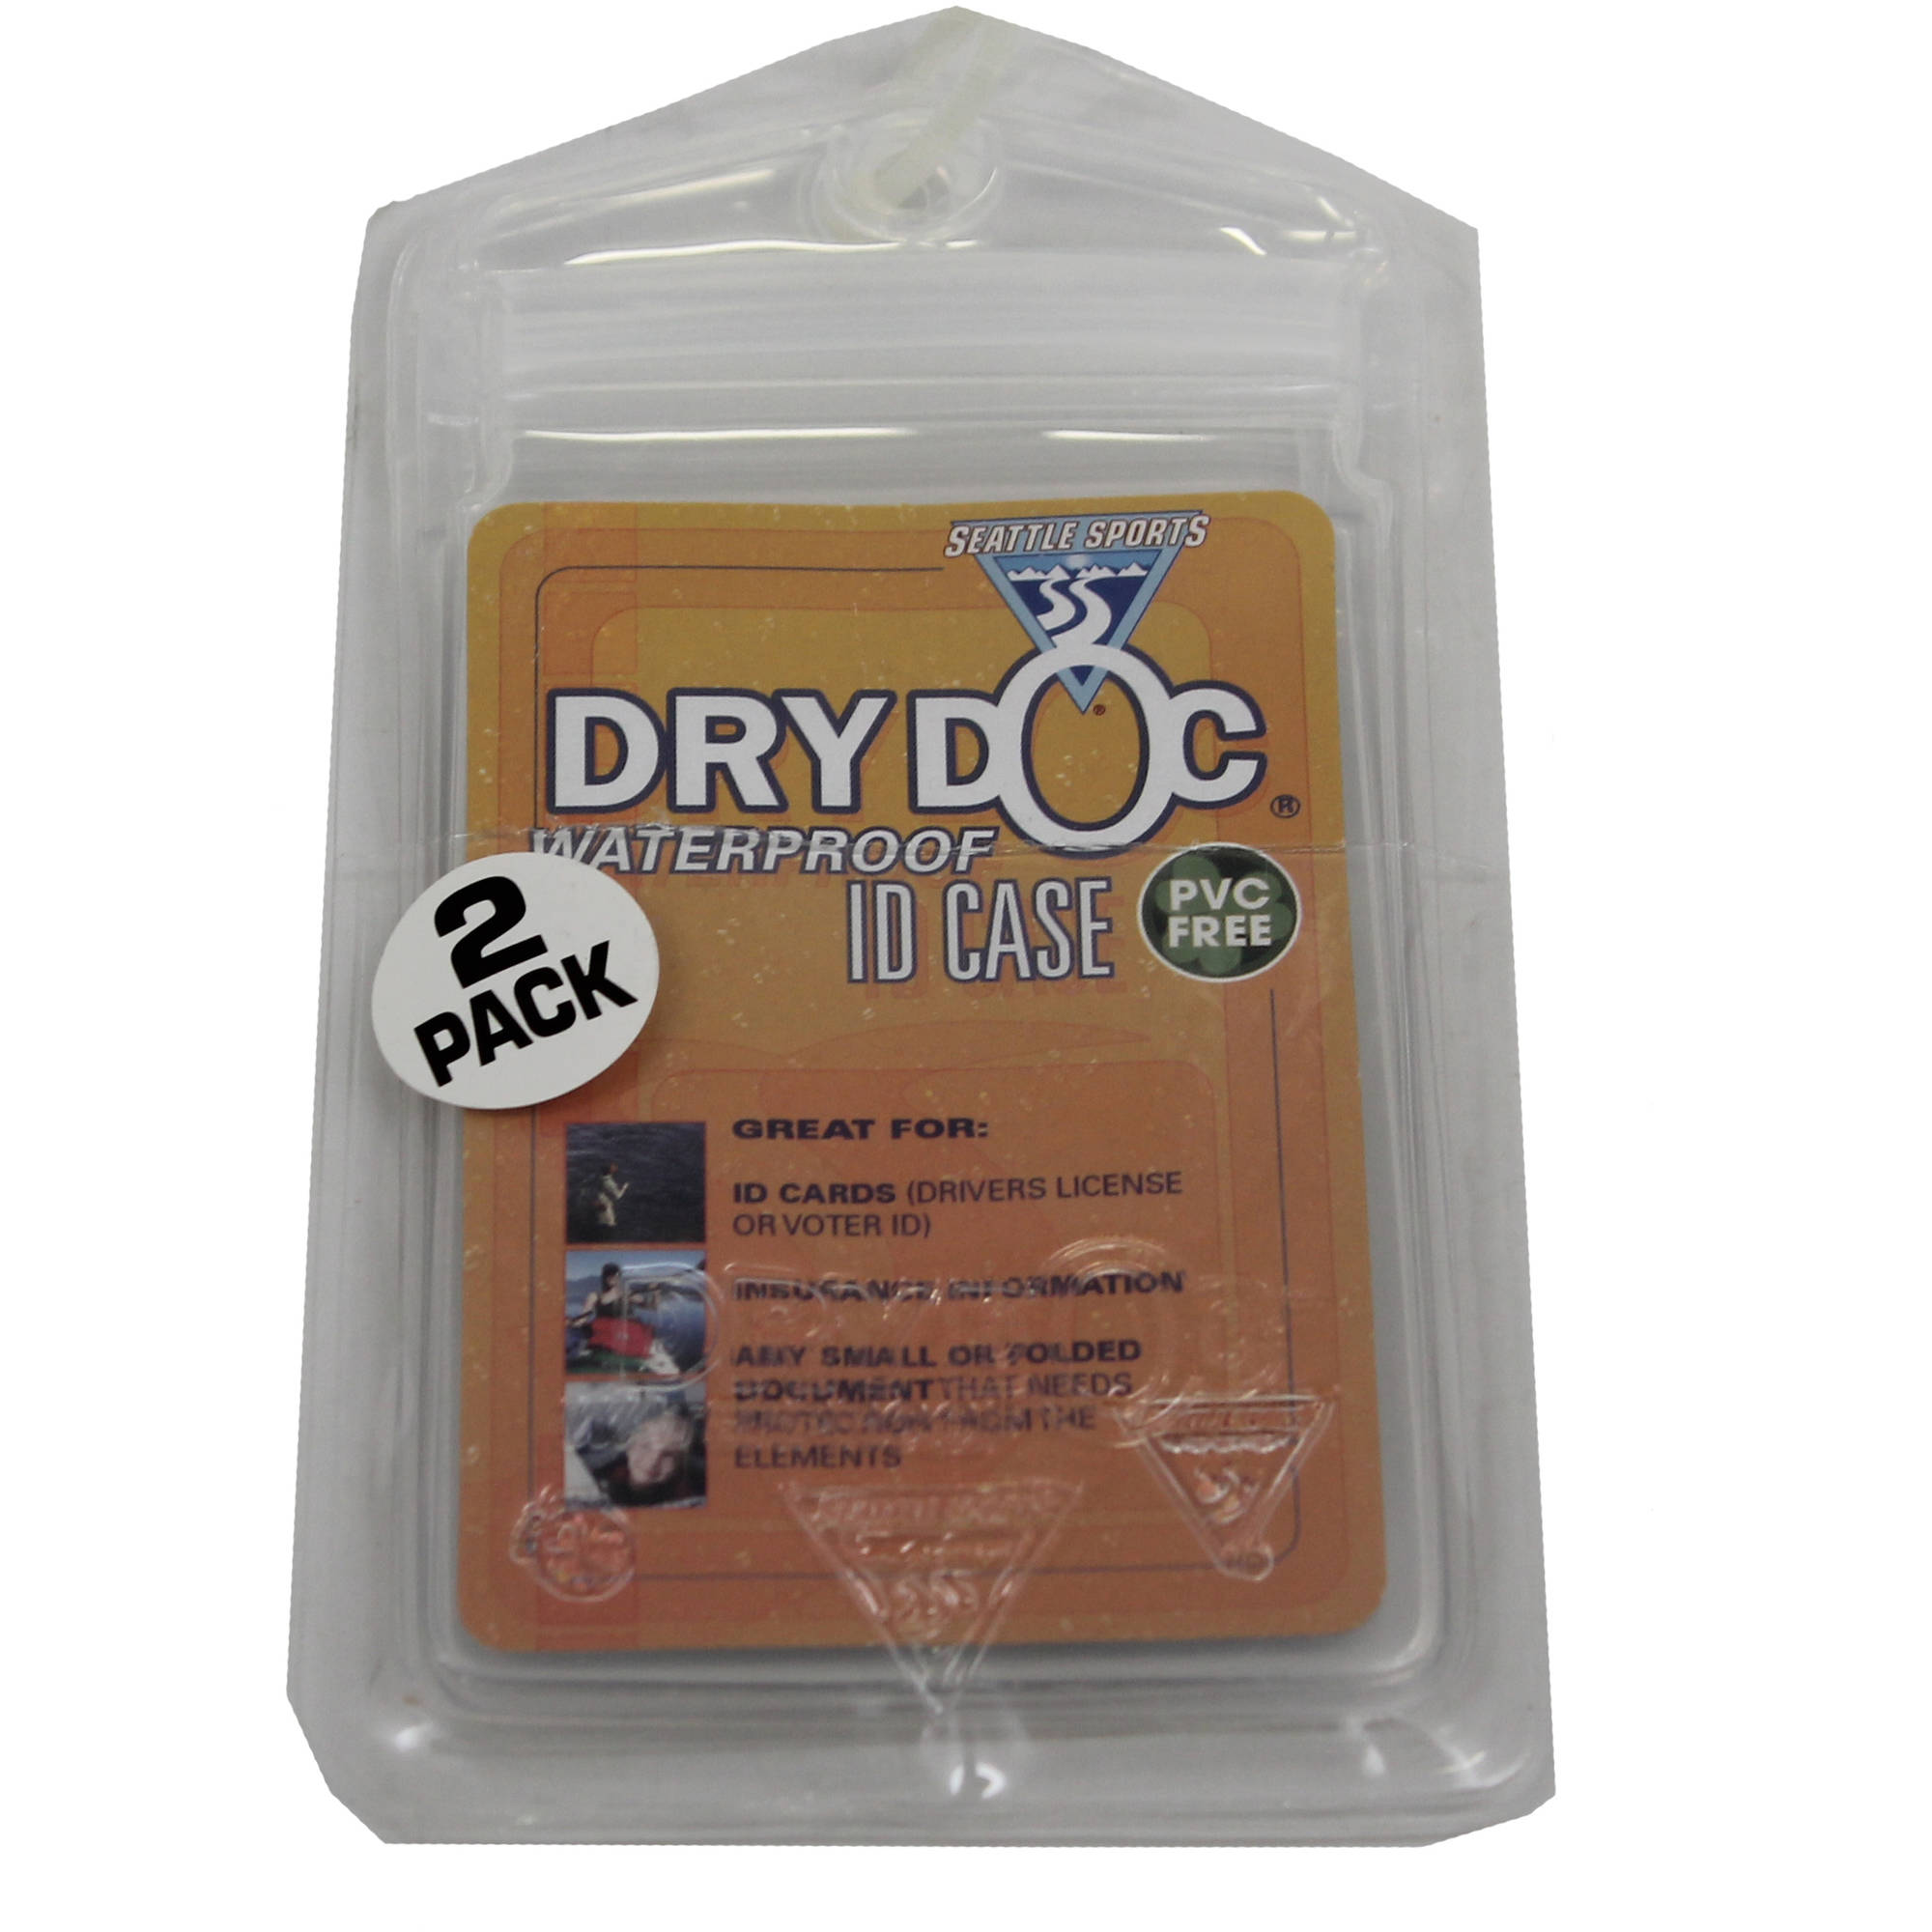 Seattle Sports Dry Doc ID, Clear